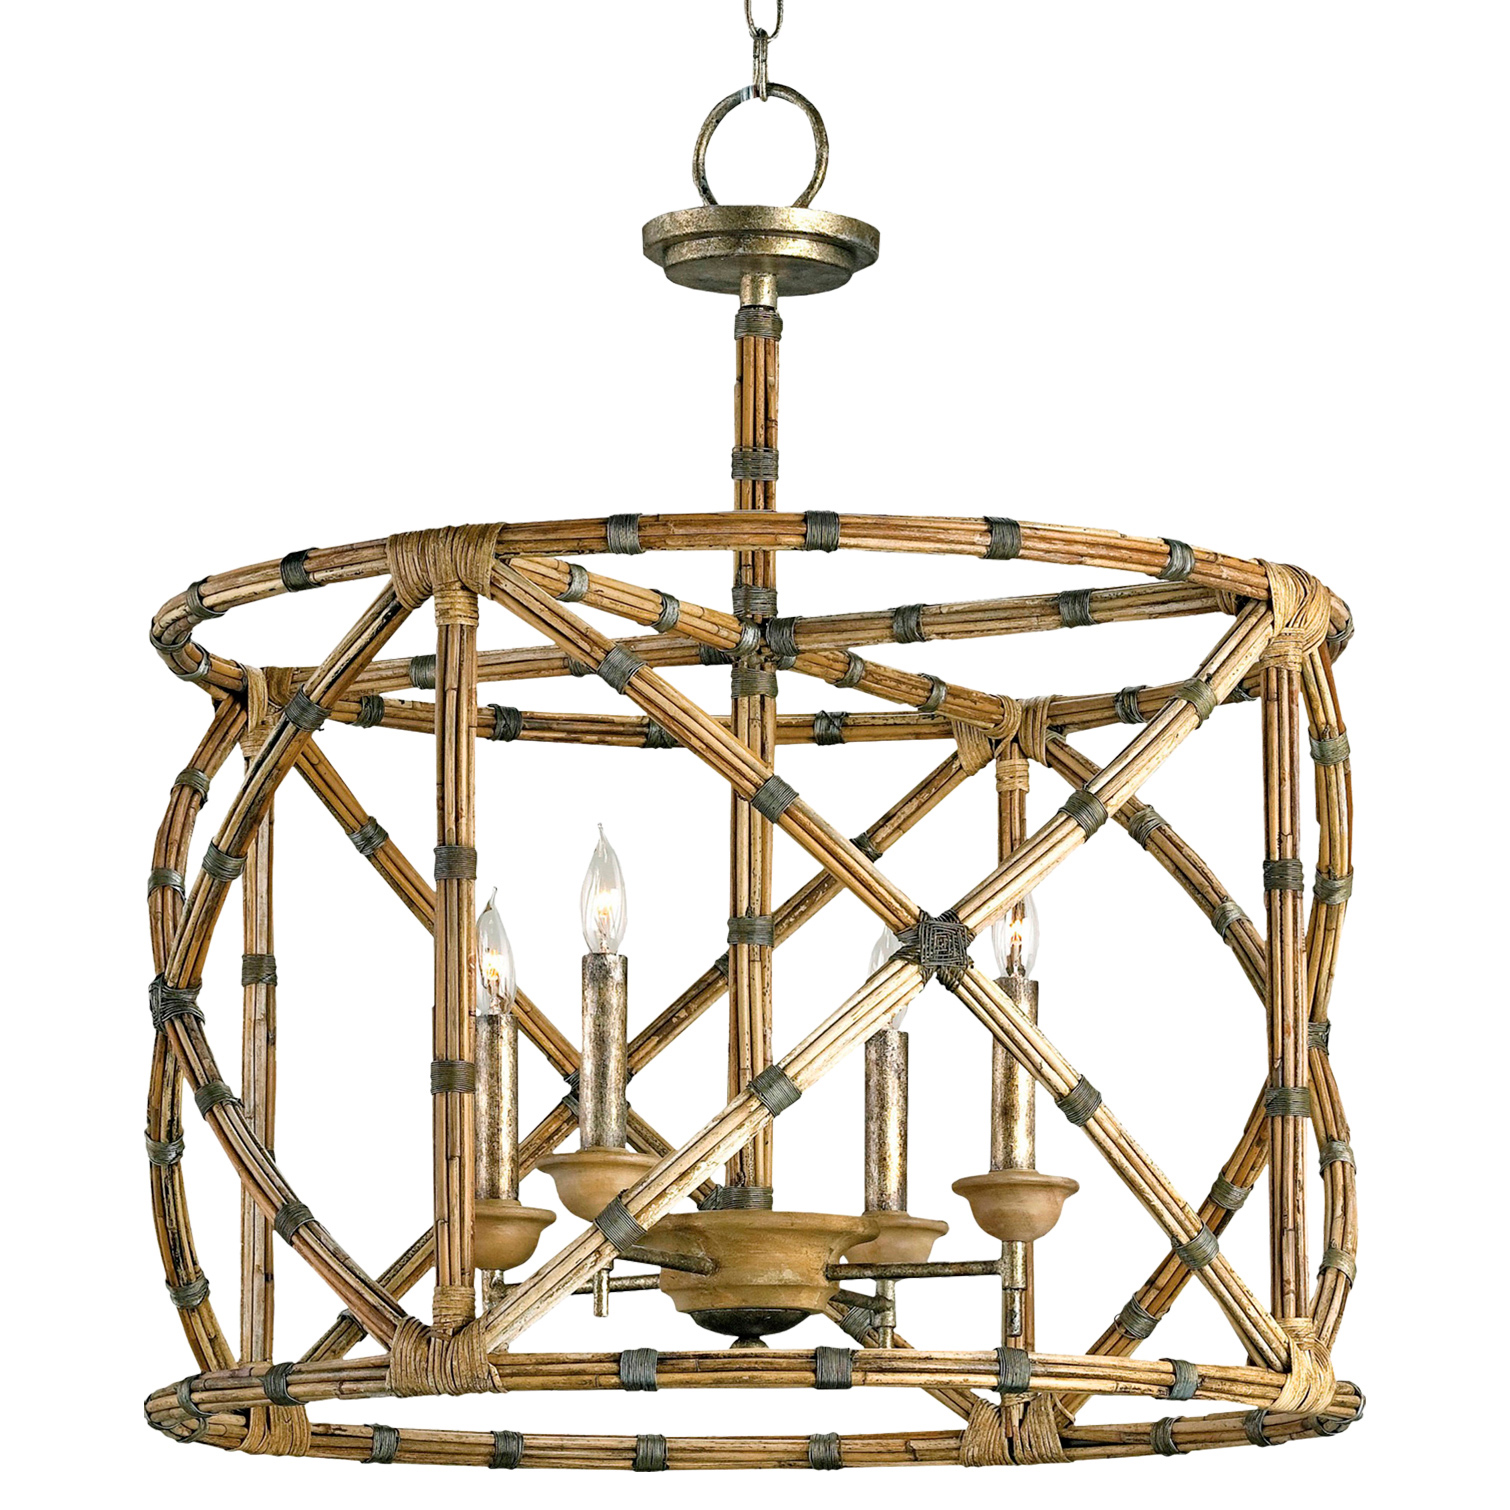 Palm Beach Bamboo Washed Wood 4 Light Lantern Pendant Lamp